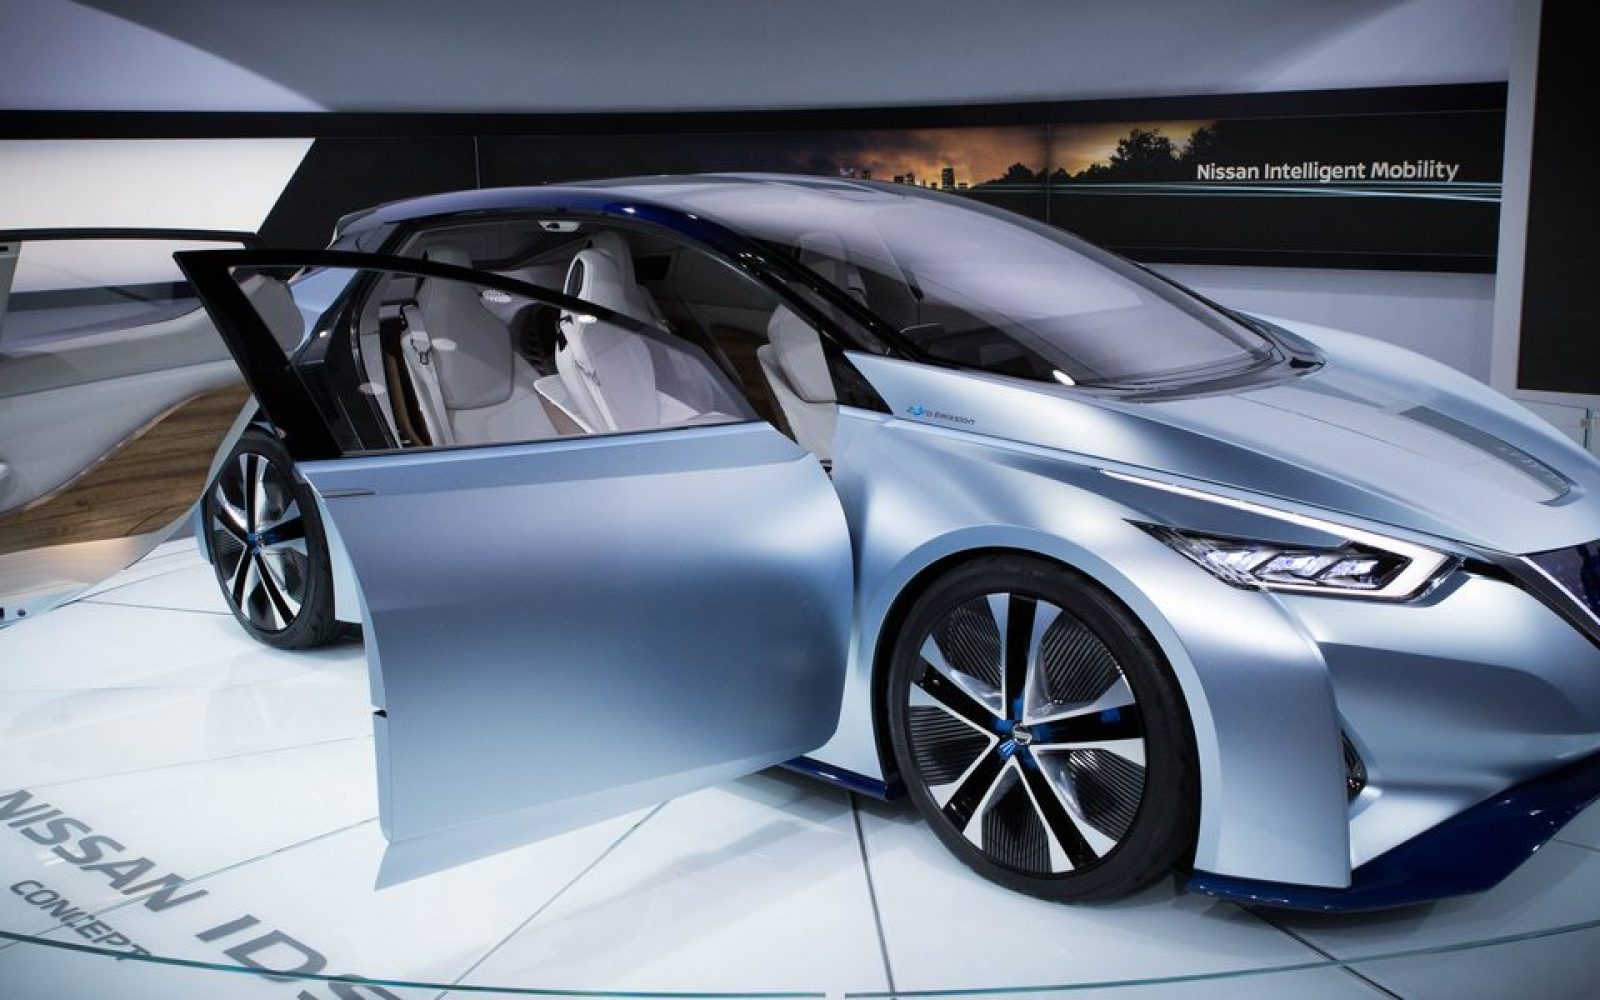 Leaf 60 Kwh Battery >> Nissan says it will unveil next-gen LEAF with 200+ miles of range in September, ship it soon ...